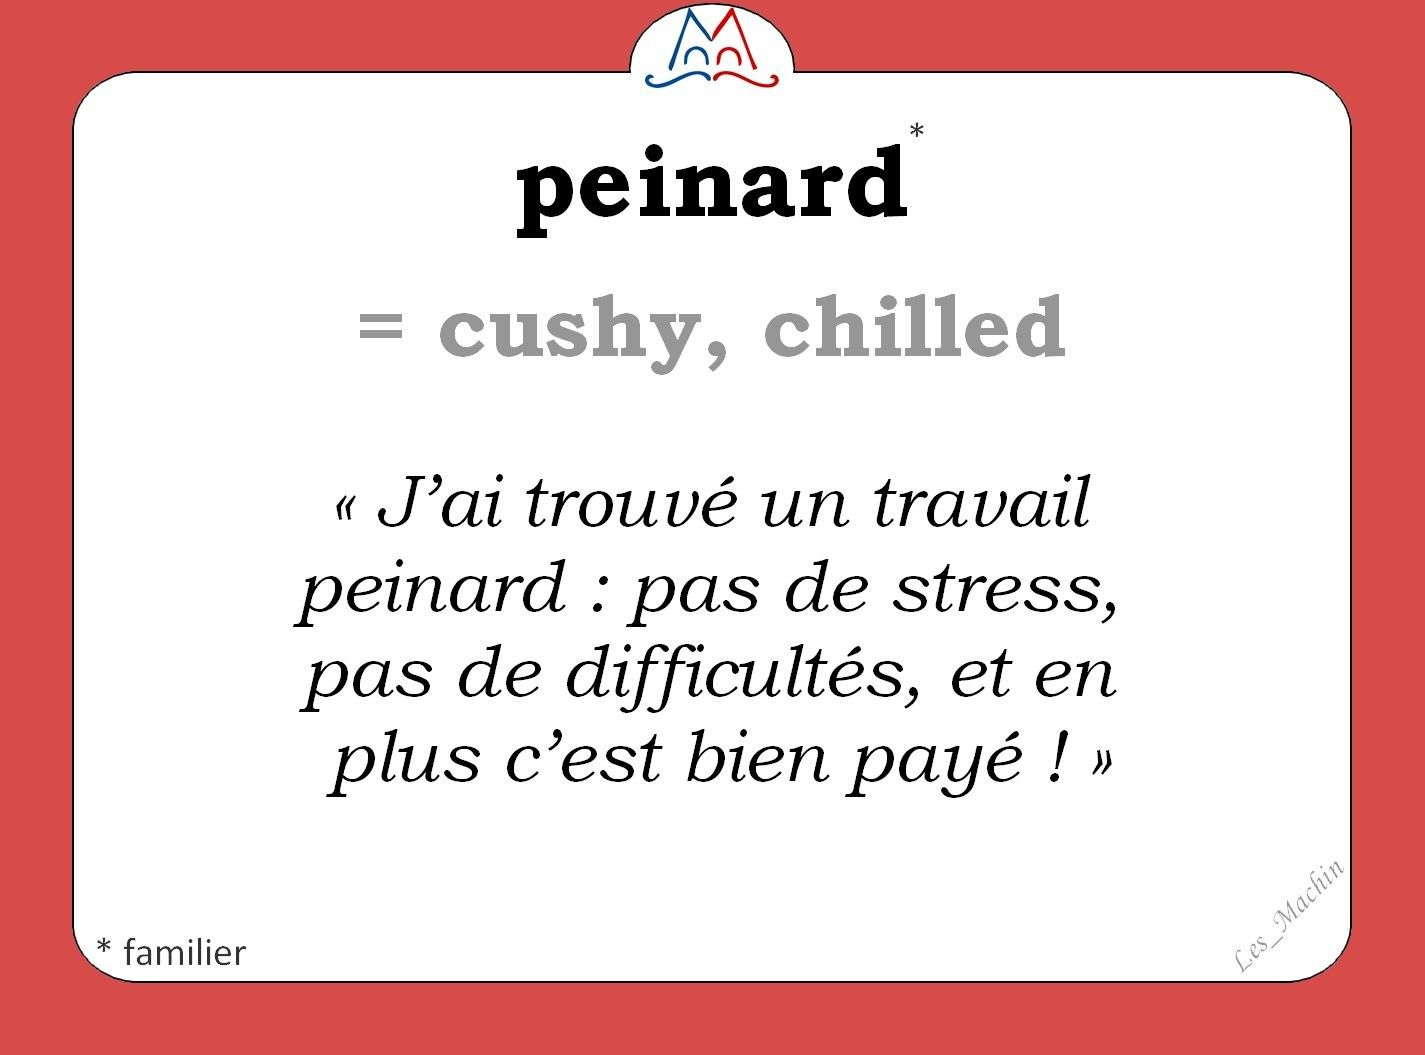 Collins French Dictionary | Translations, Definitions and ...